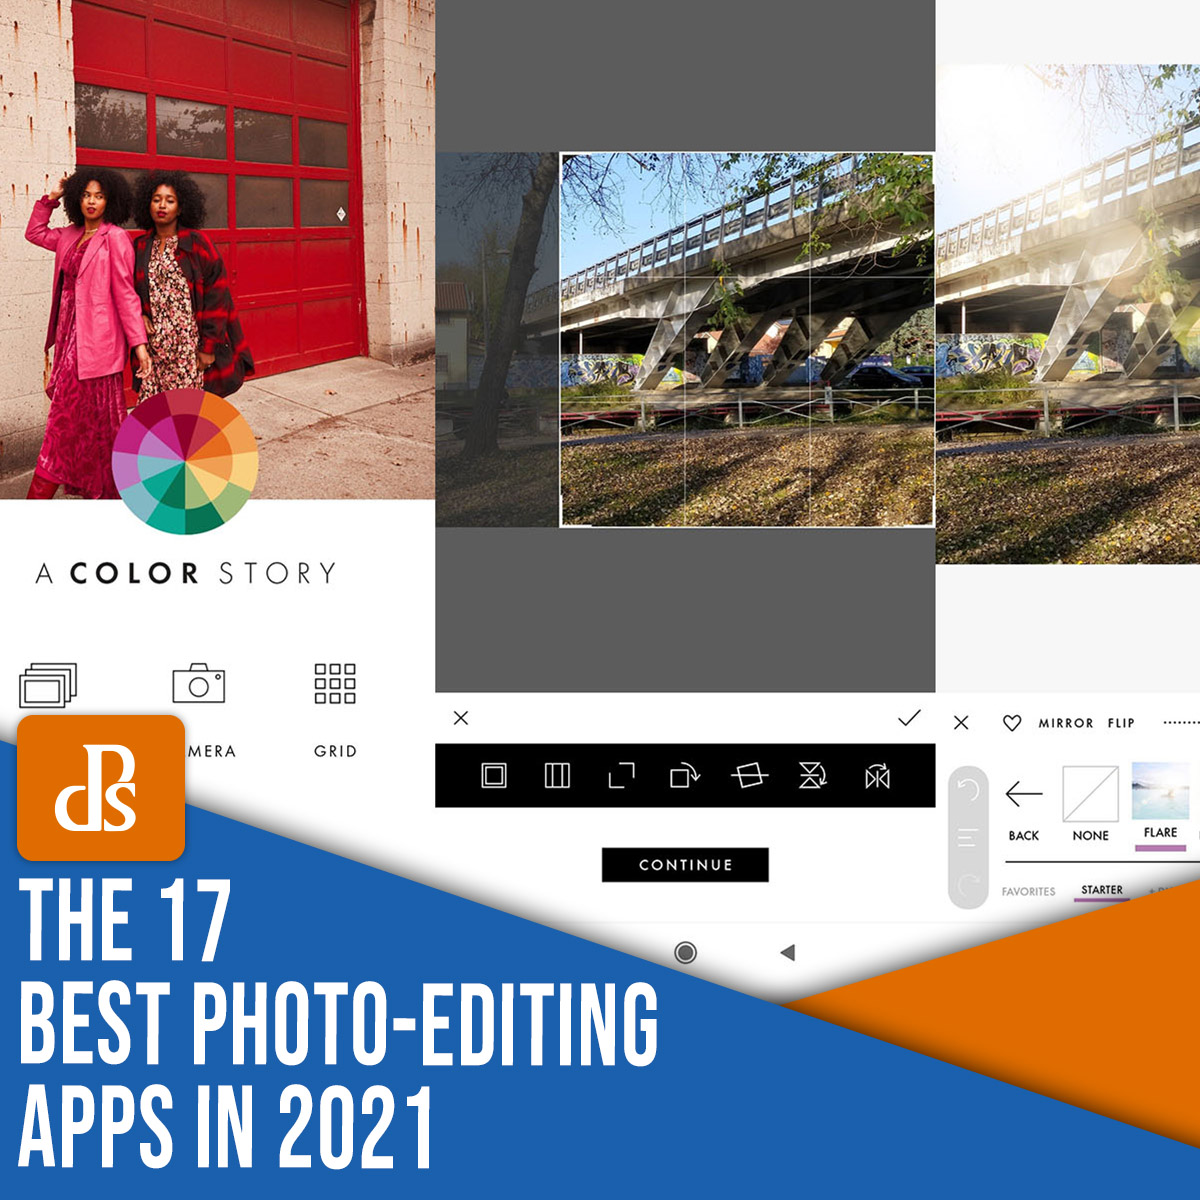 17 best photo-editing apps in 2021